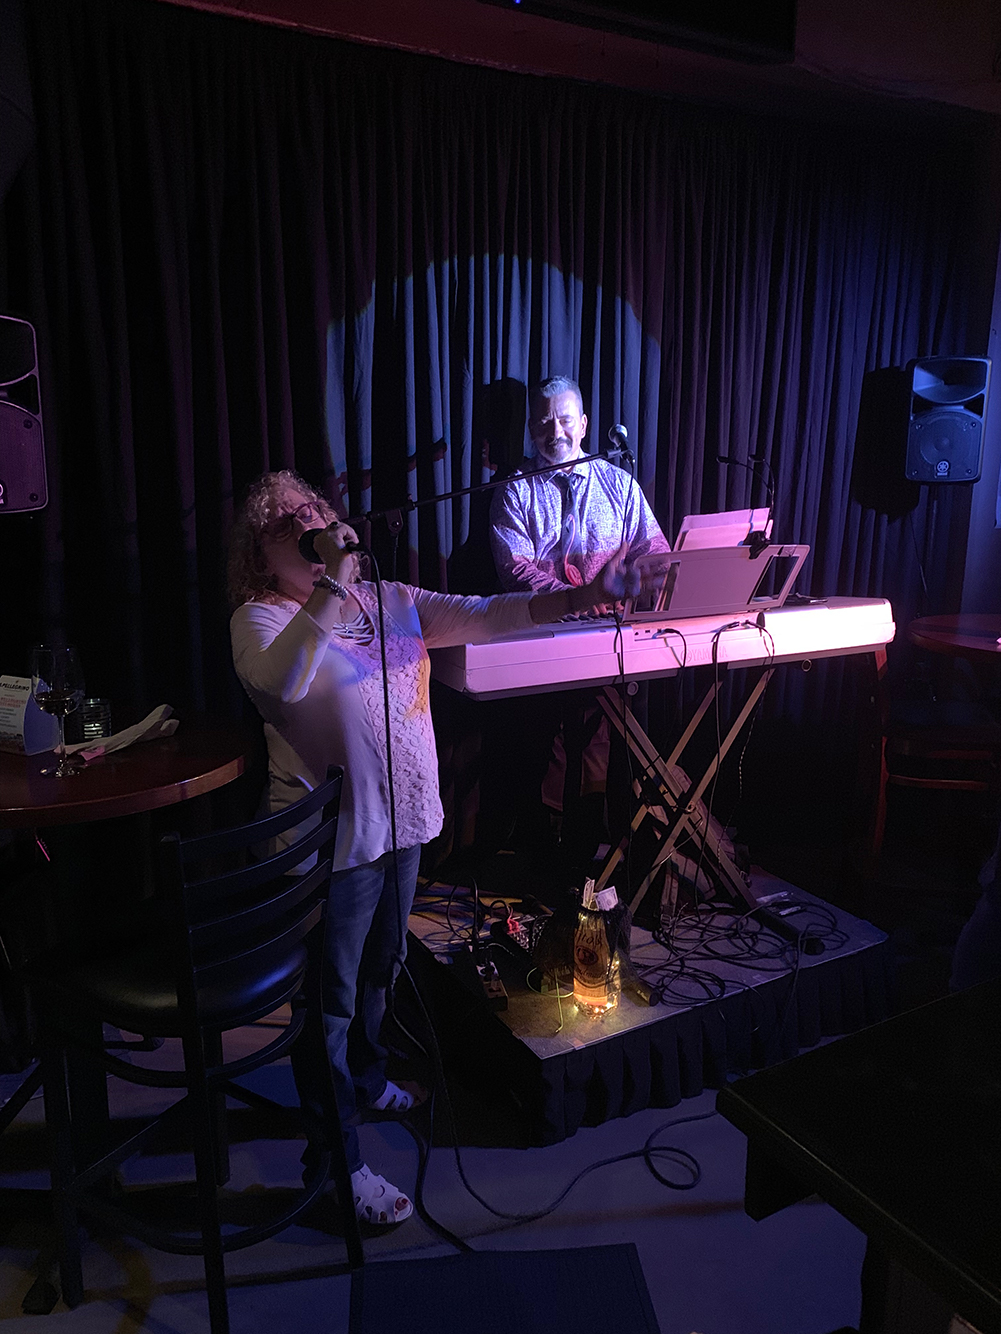 A newer addition to Midtown, Mediterranean restaurant Olive Bistro has a keyboardist and singer playing contemporary and past hits on Tuesdays, an open mic night on Fridays and jazz on Sundays during its brunch.